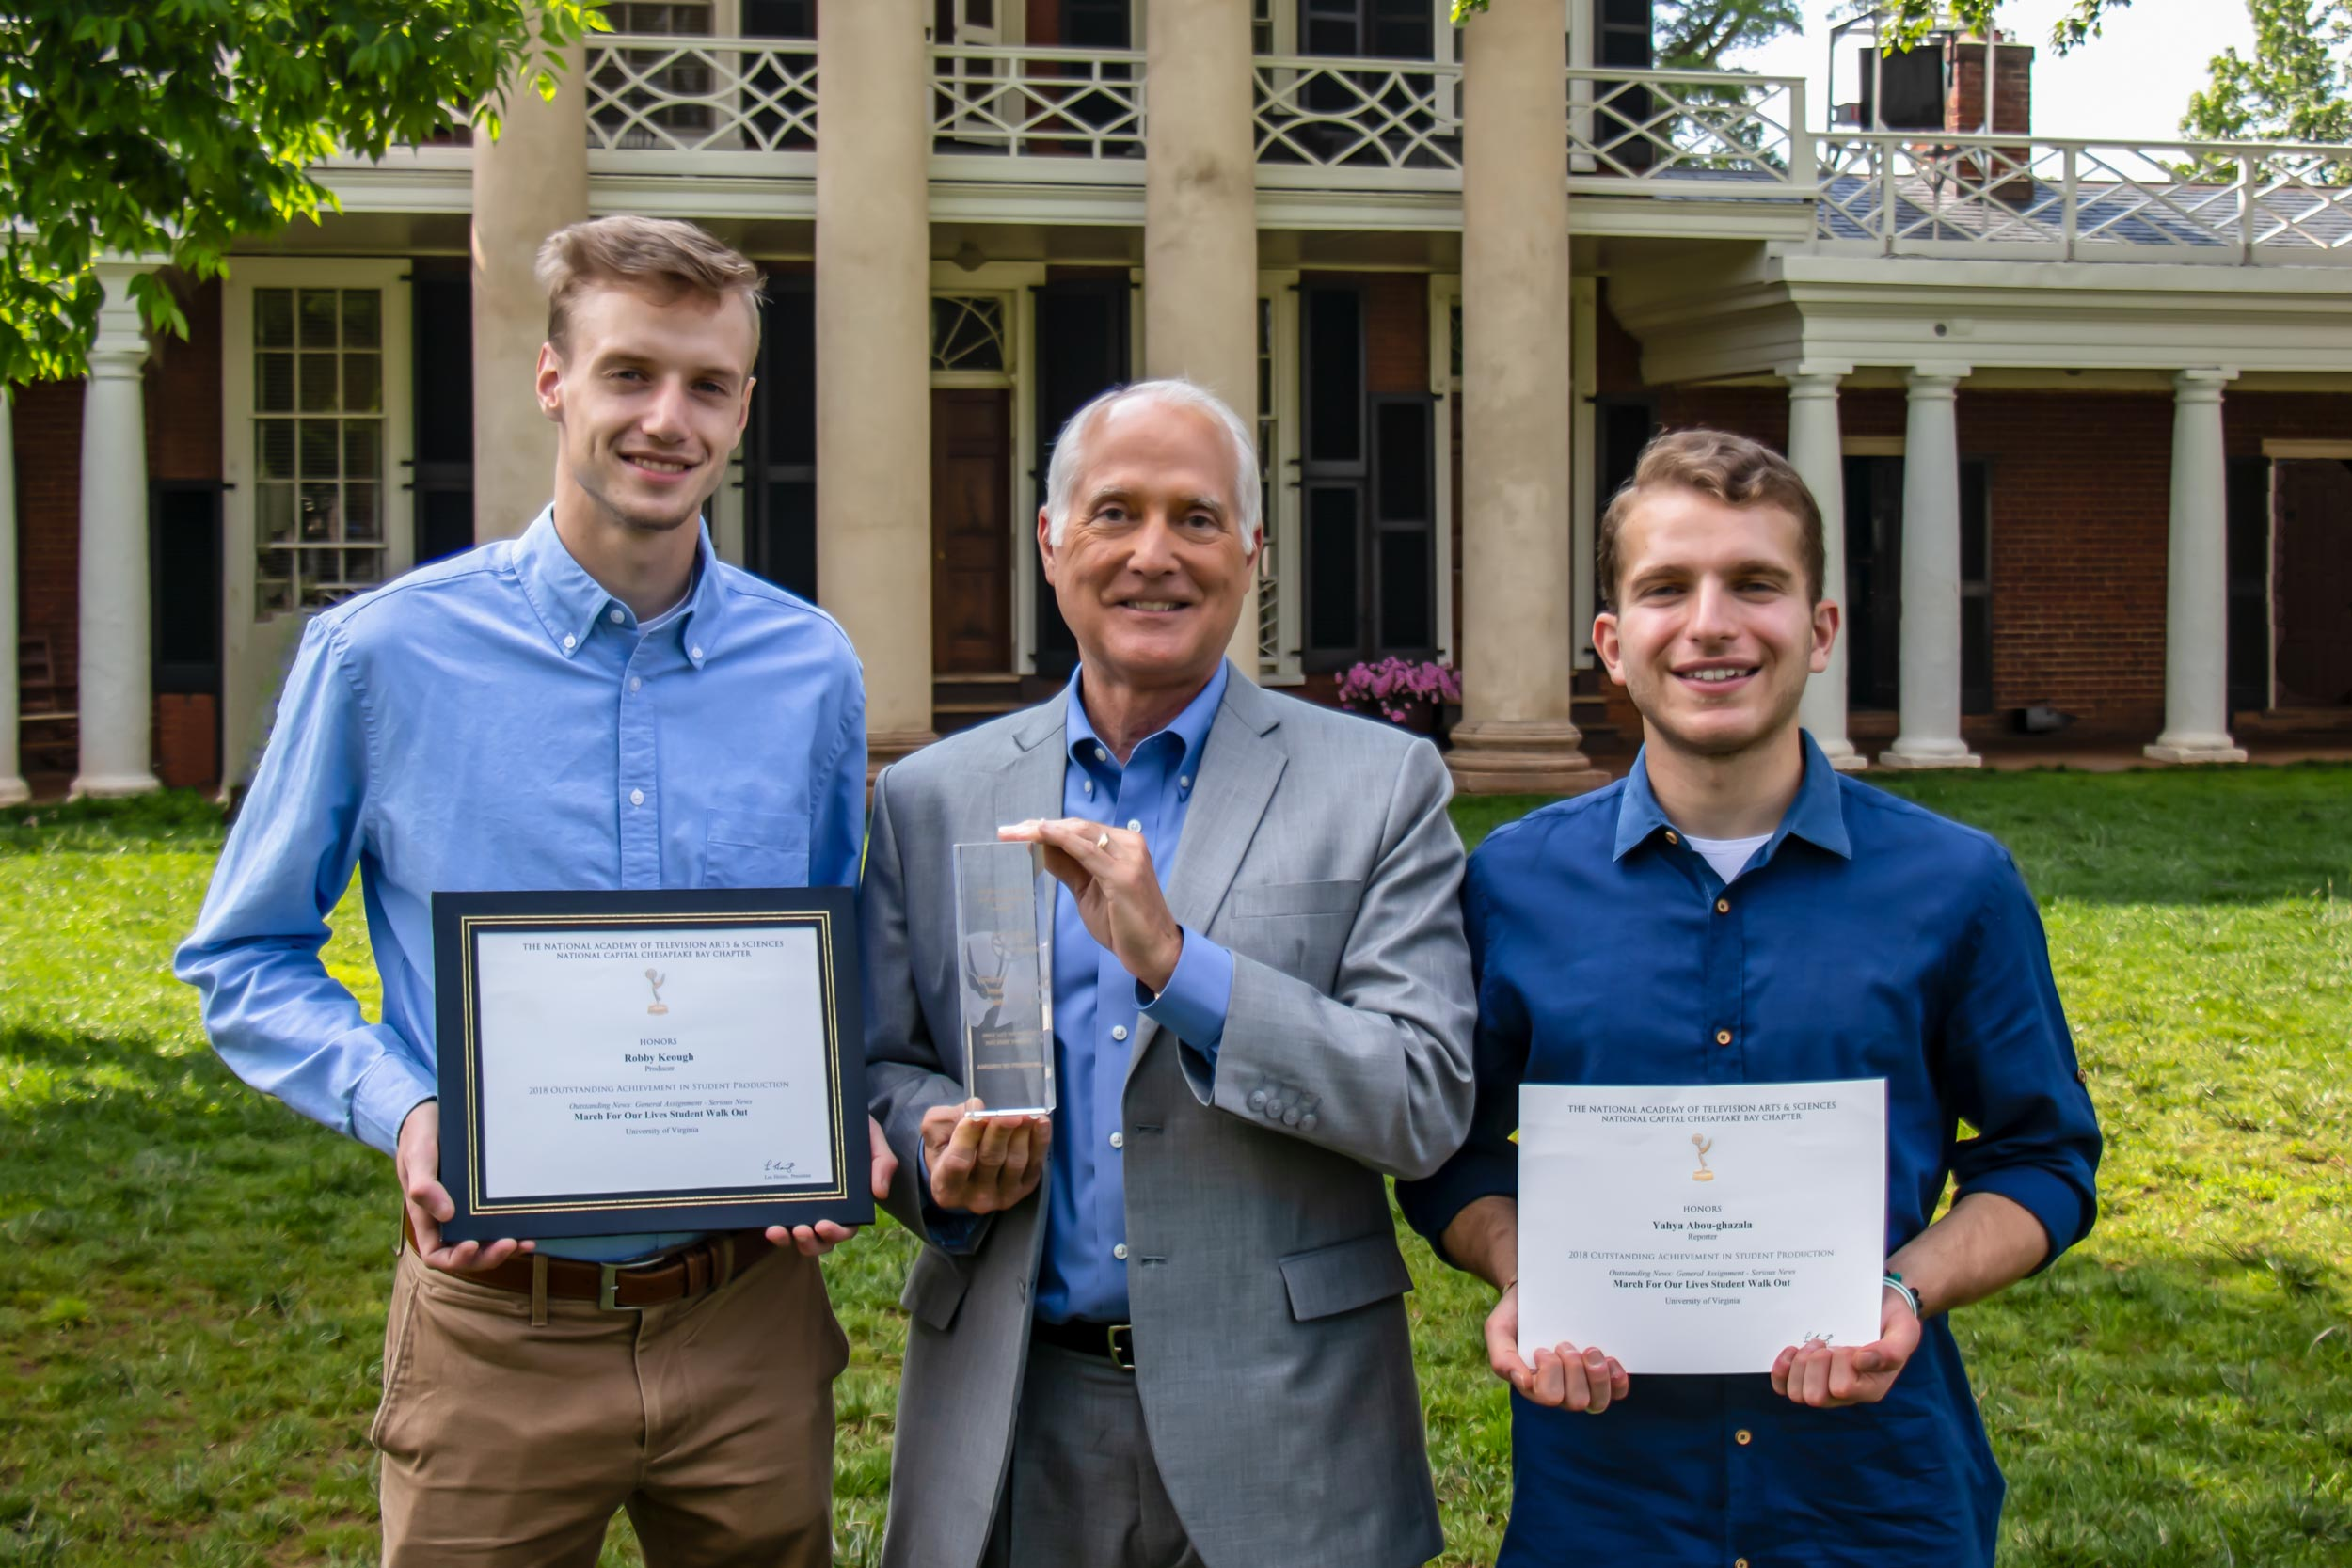 """From left, Robby Keogh, media studies professor (and former CBS News correspondent) Wyatt Andrews and Yahya Abou-Ghazala celebrate the students' Emmy for coverage of the """"March for Our Lives"""" rally at UVA."""